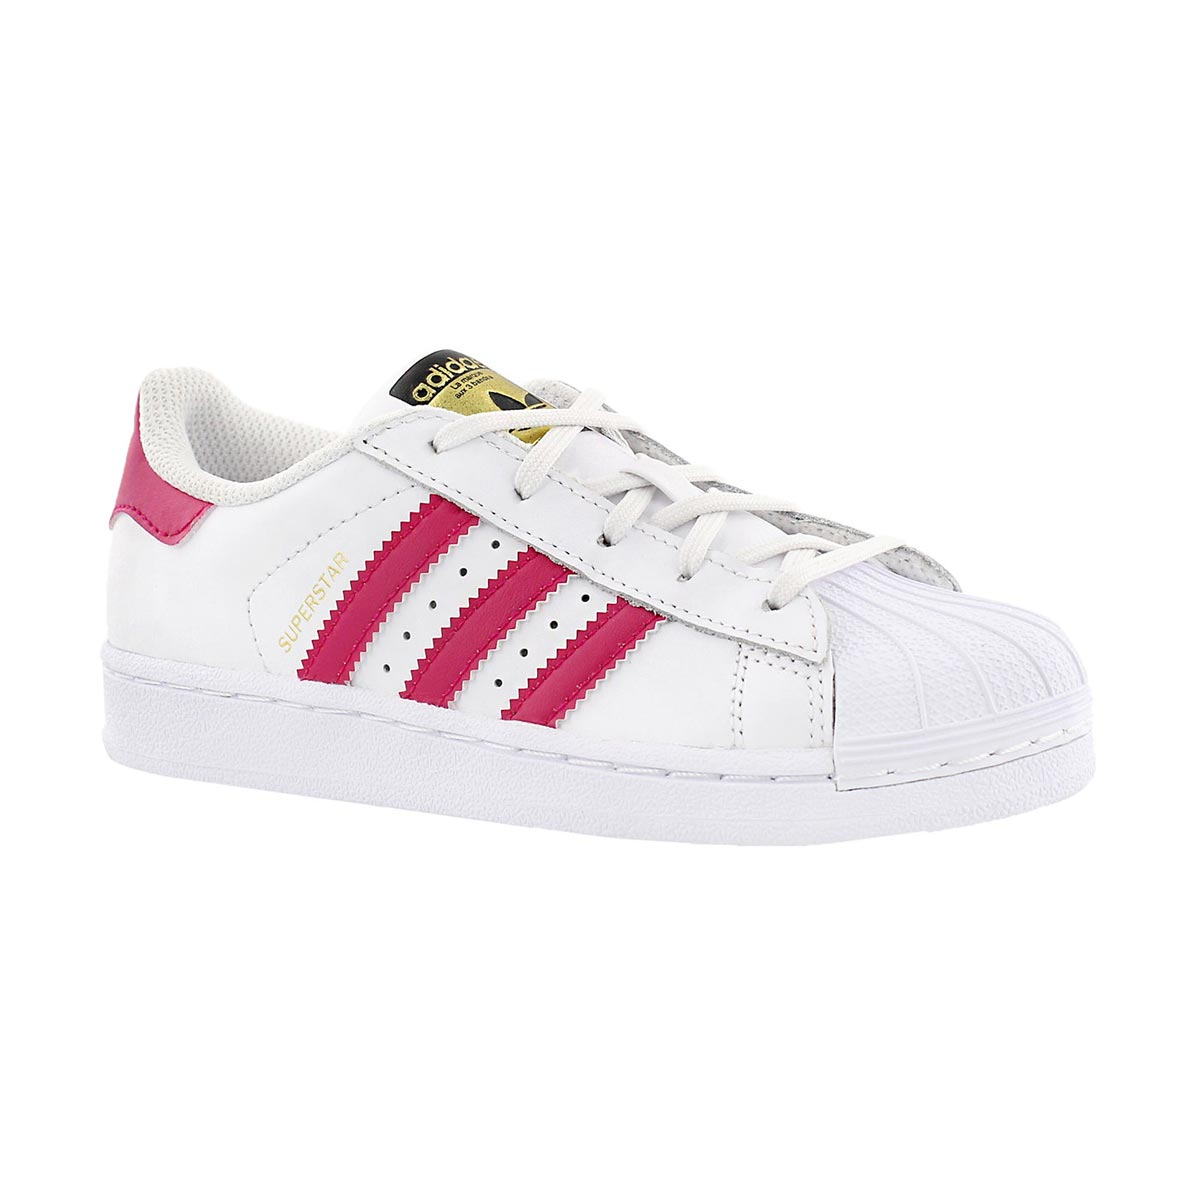 Girls' SUPERSTAR FOUNDATION white/pink sneakers